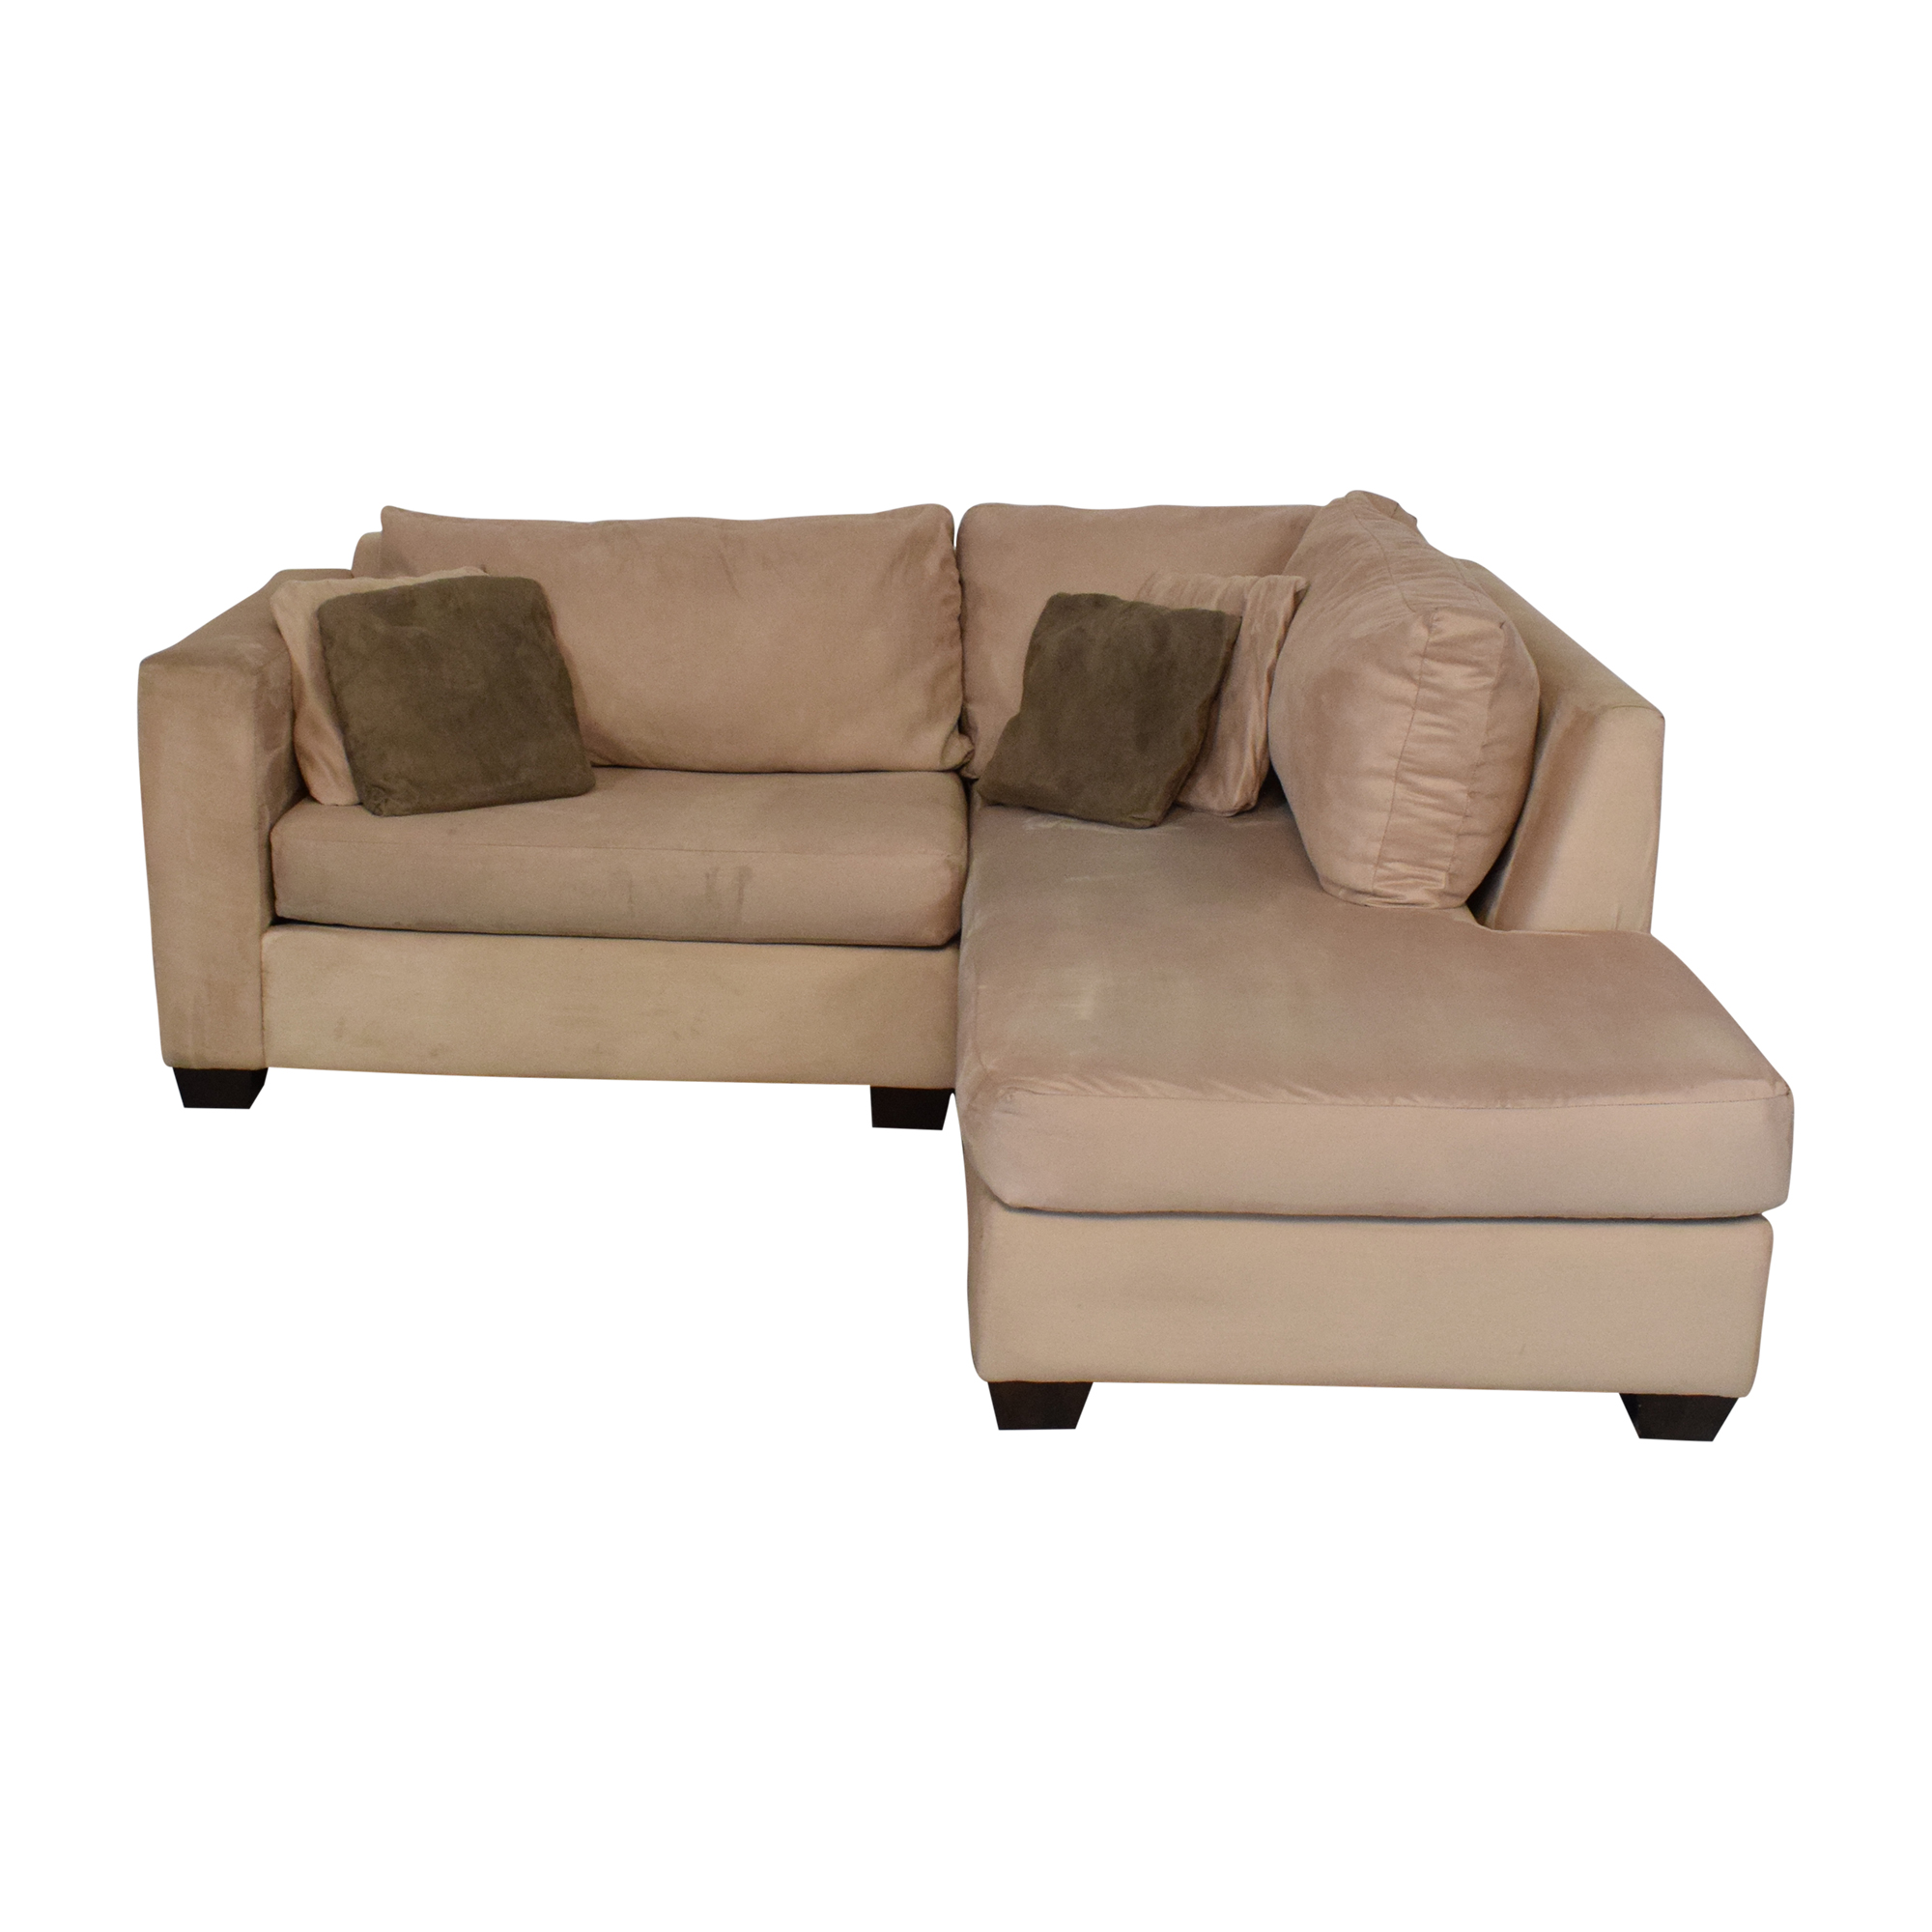 Two-Piece Chaise Sectional Sofa for sale